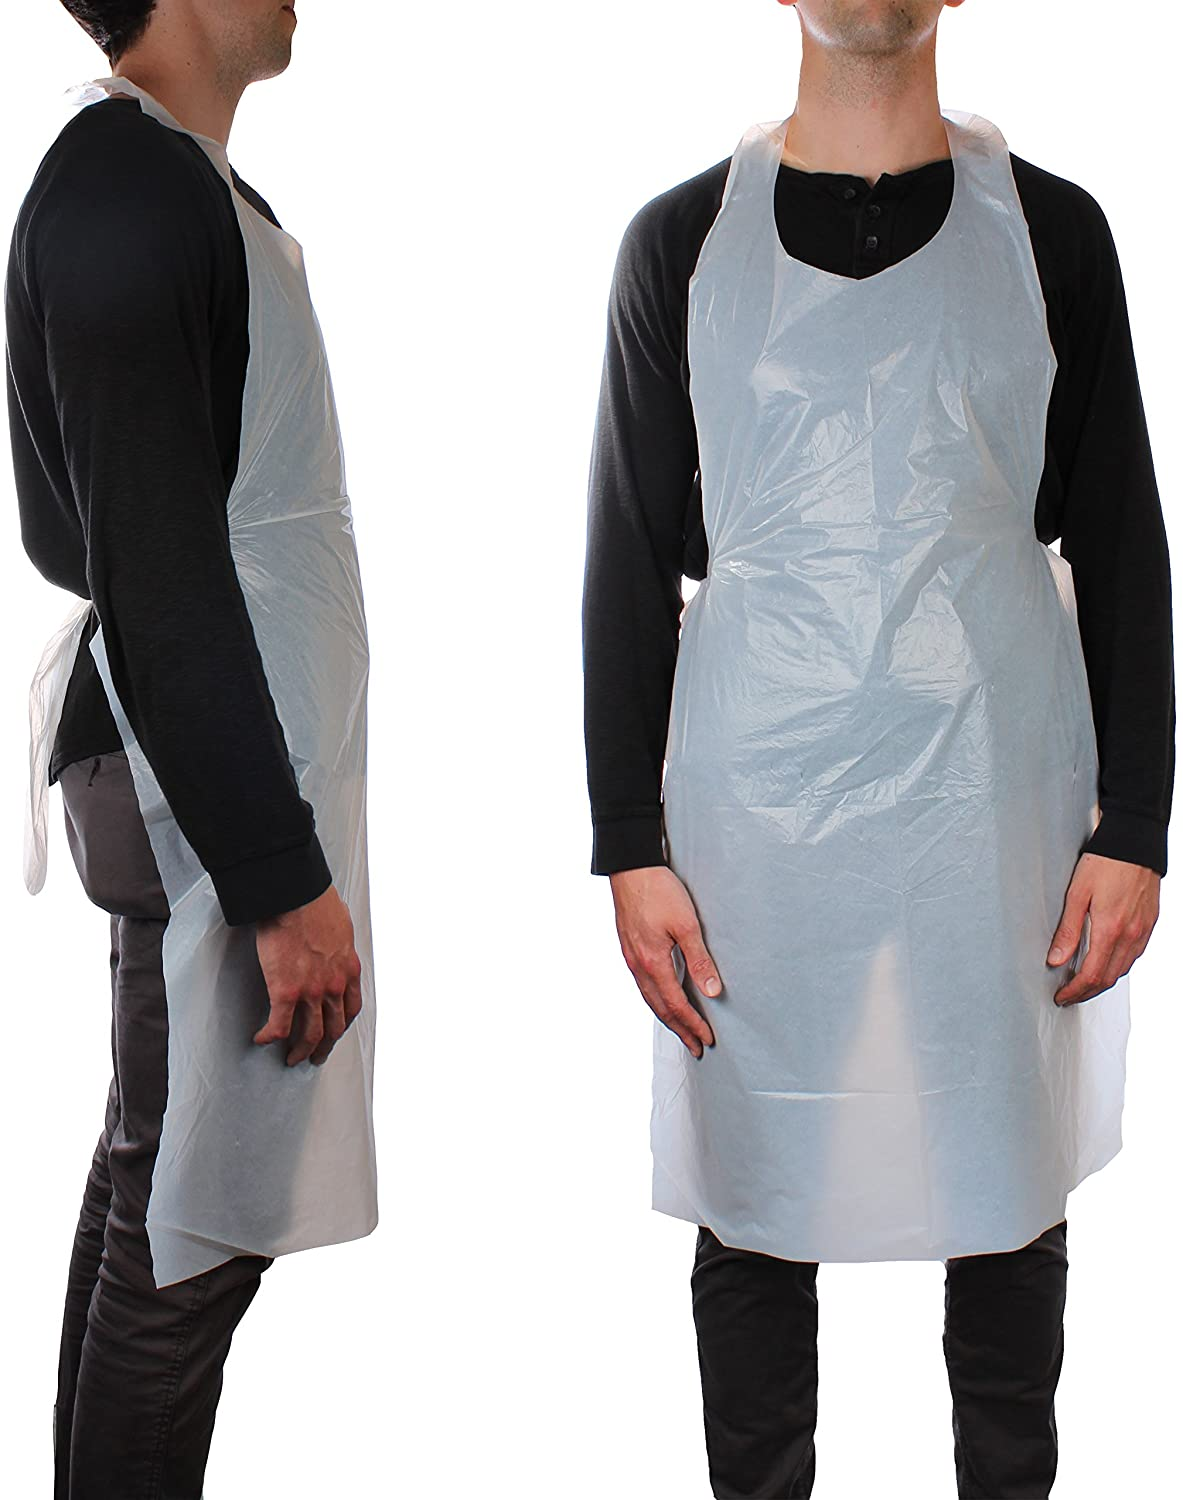 Disposable Aprons and Gloves